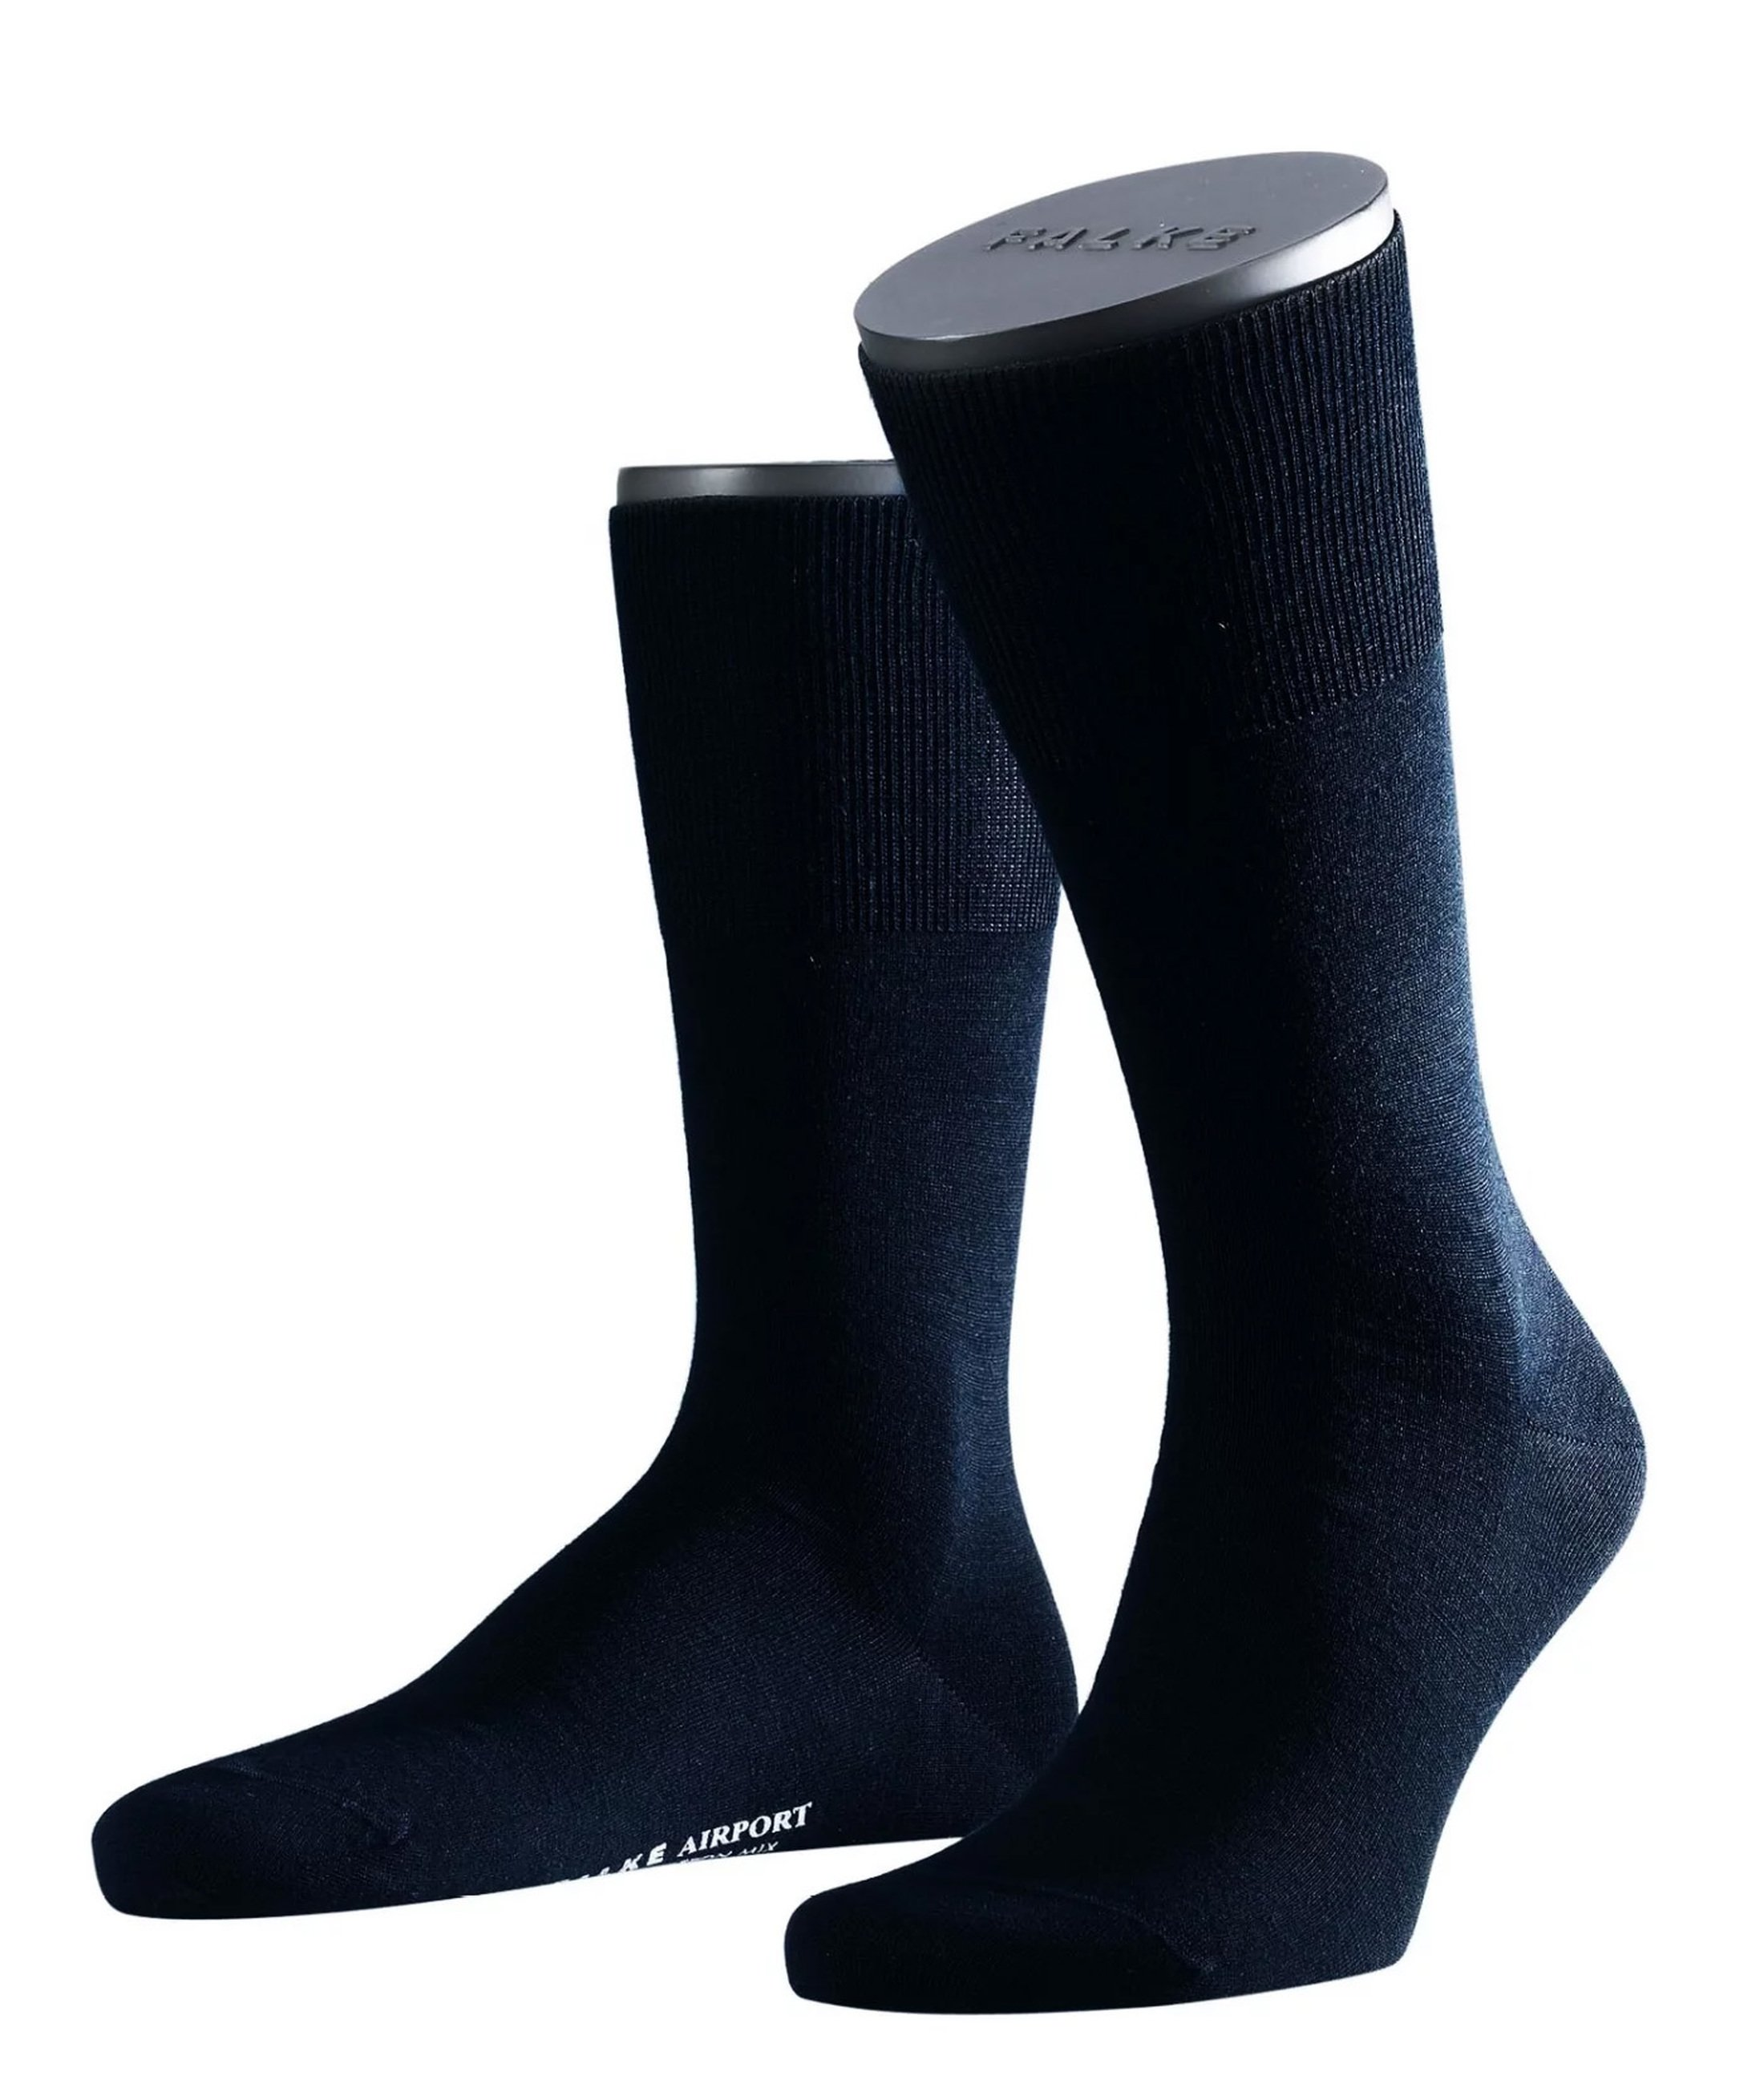 FALKE Airport PLUS Socken Navy 6370 foto 0